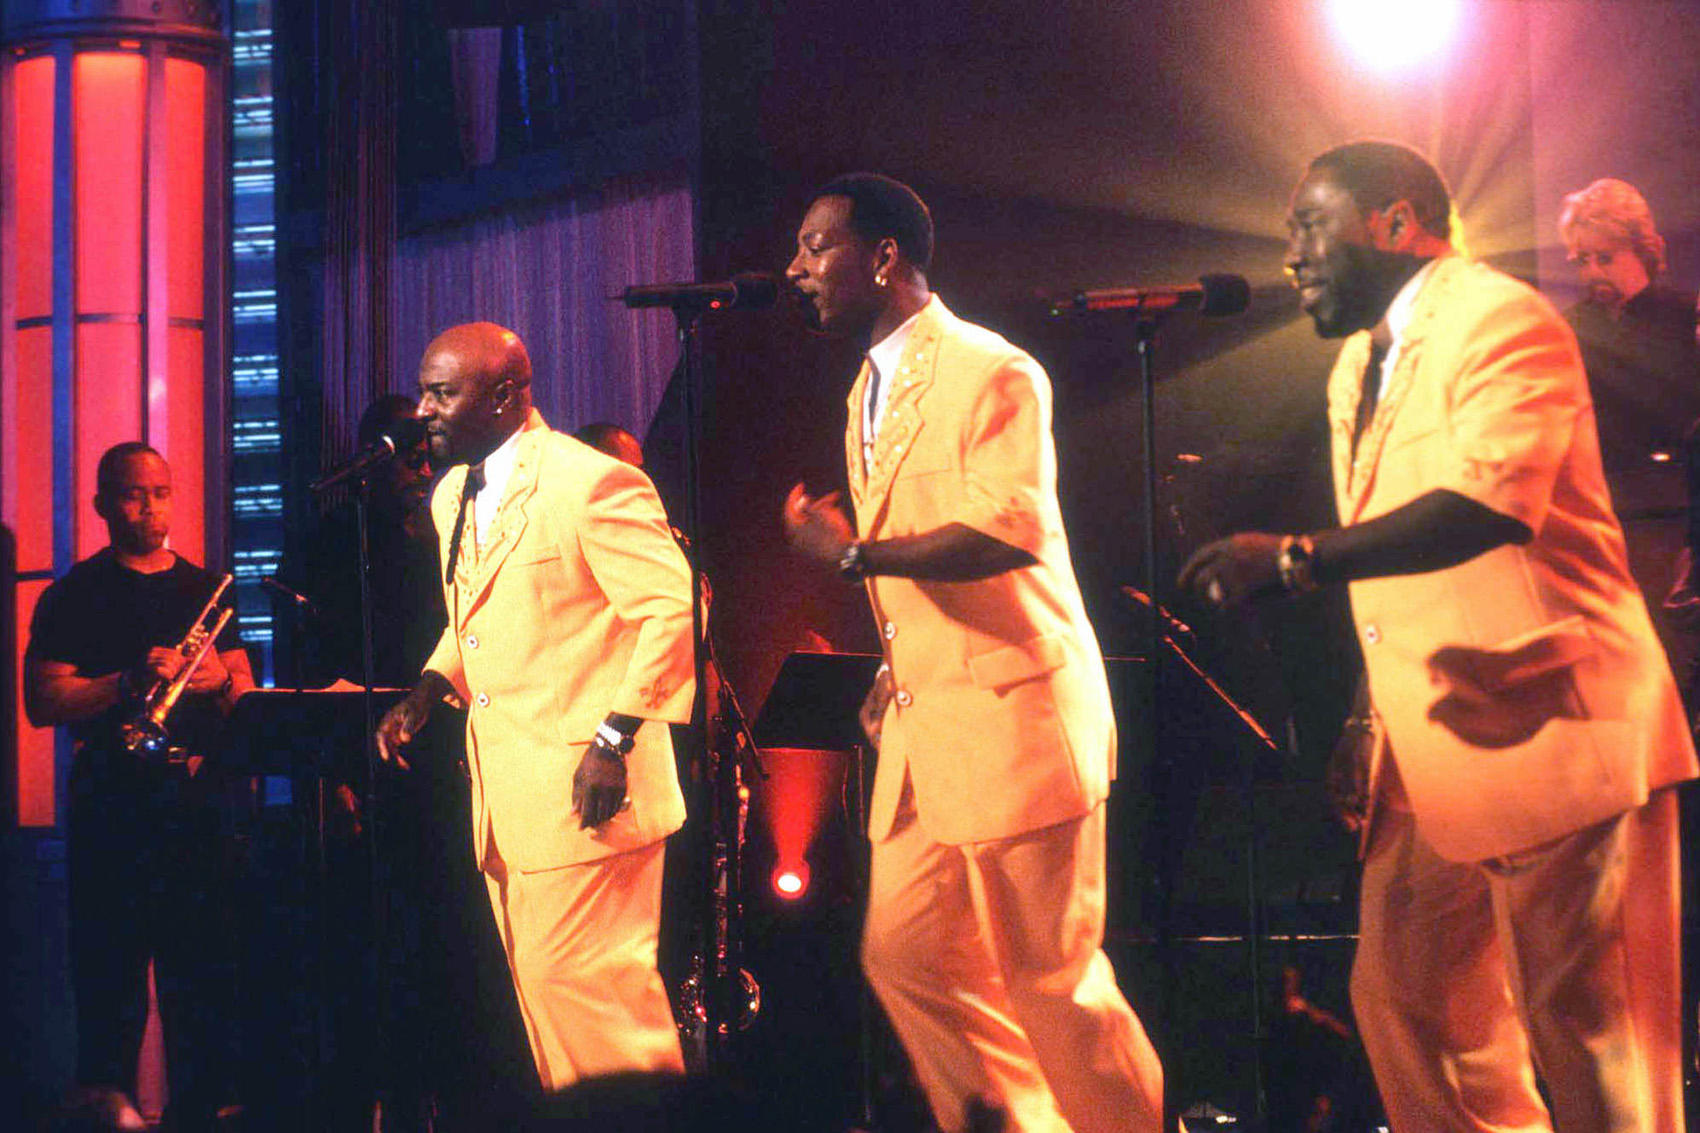 The O'Jays Are Back, Sharing 'The Last Word' On Award-Winning Musical Career